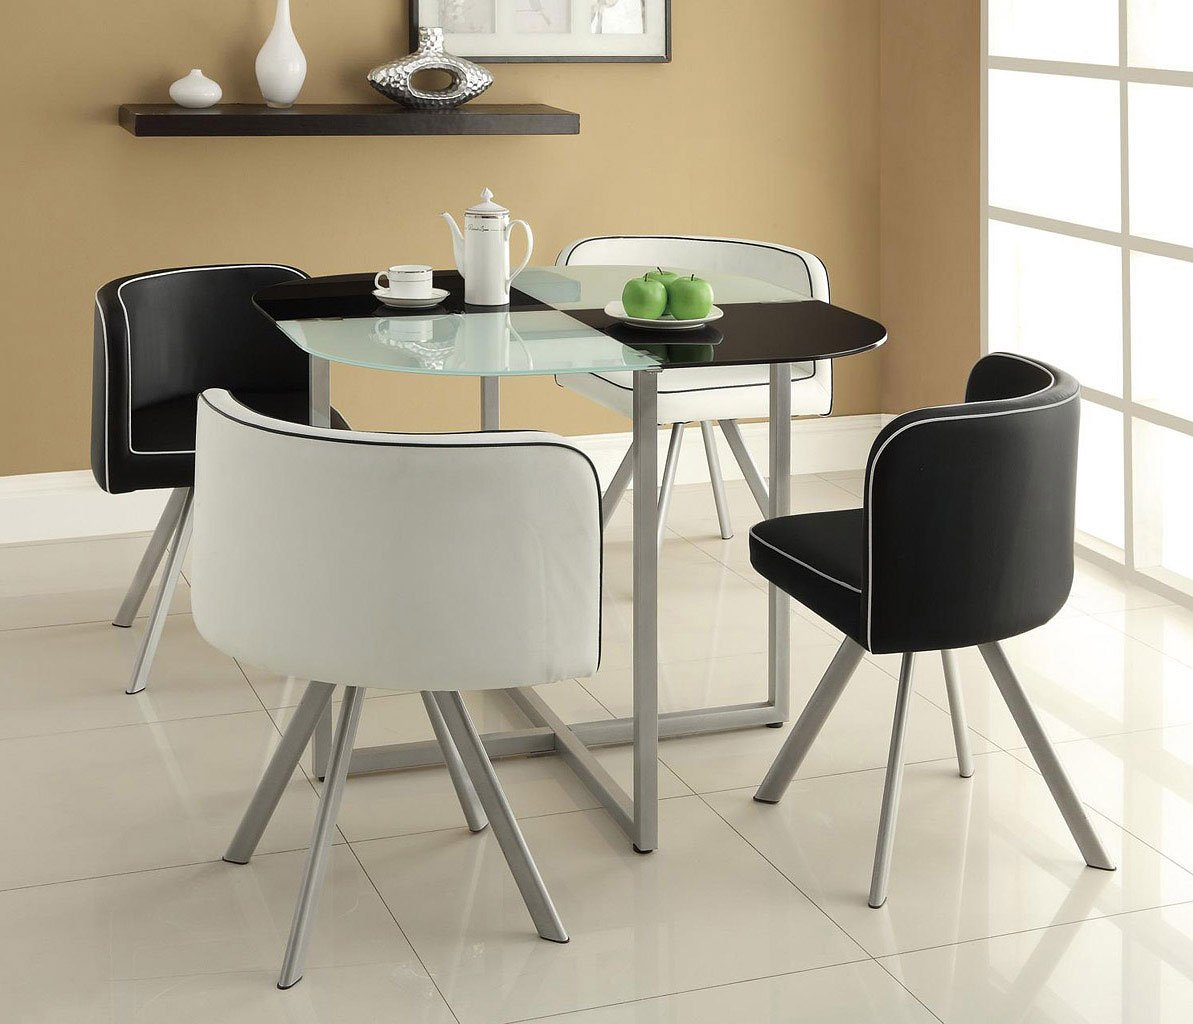 Dining Room Sets 5 Piece: Trussell 5-Piece Dining Room Set By Coaster Furniture